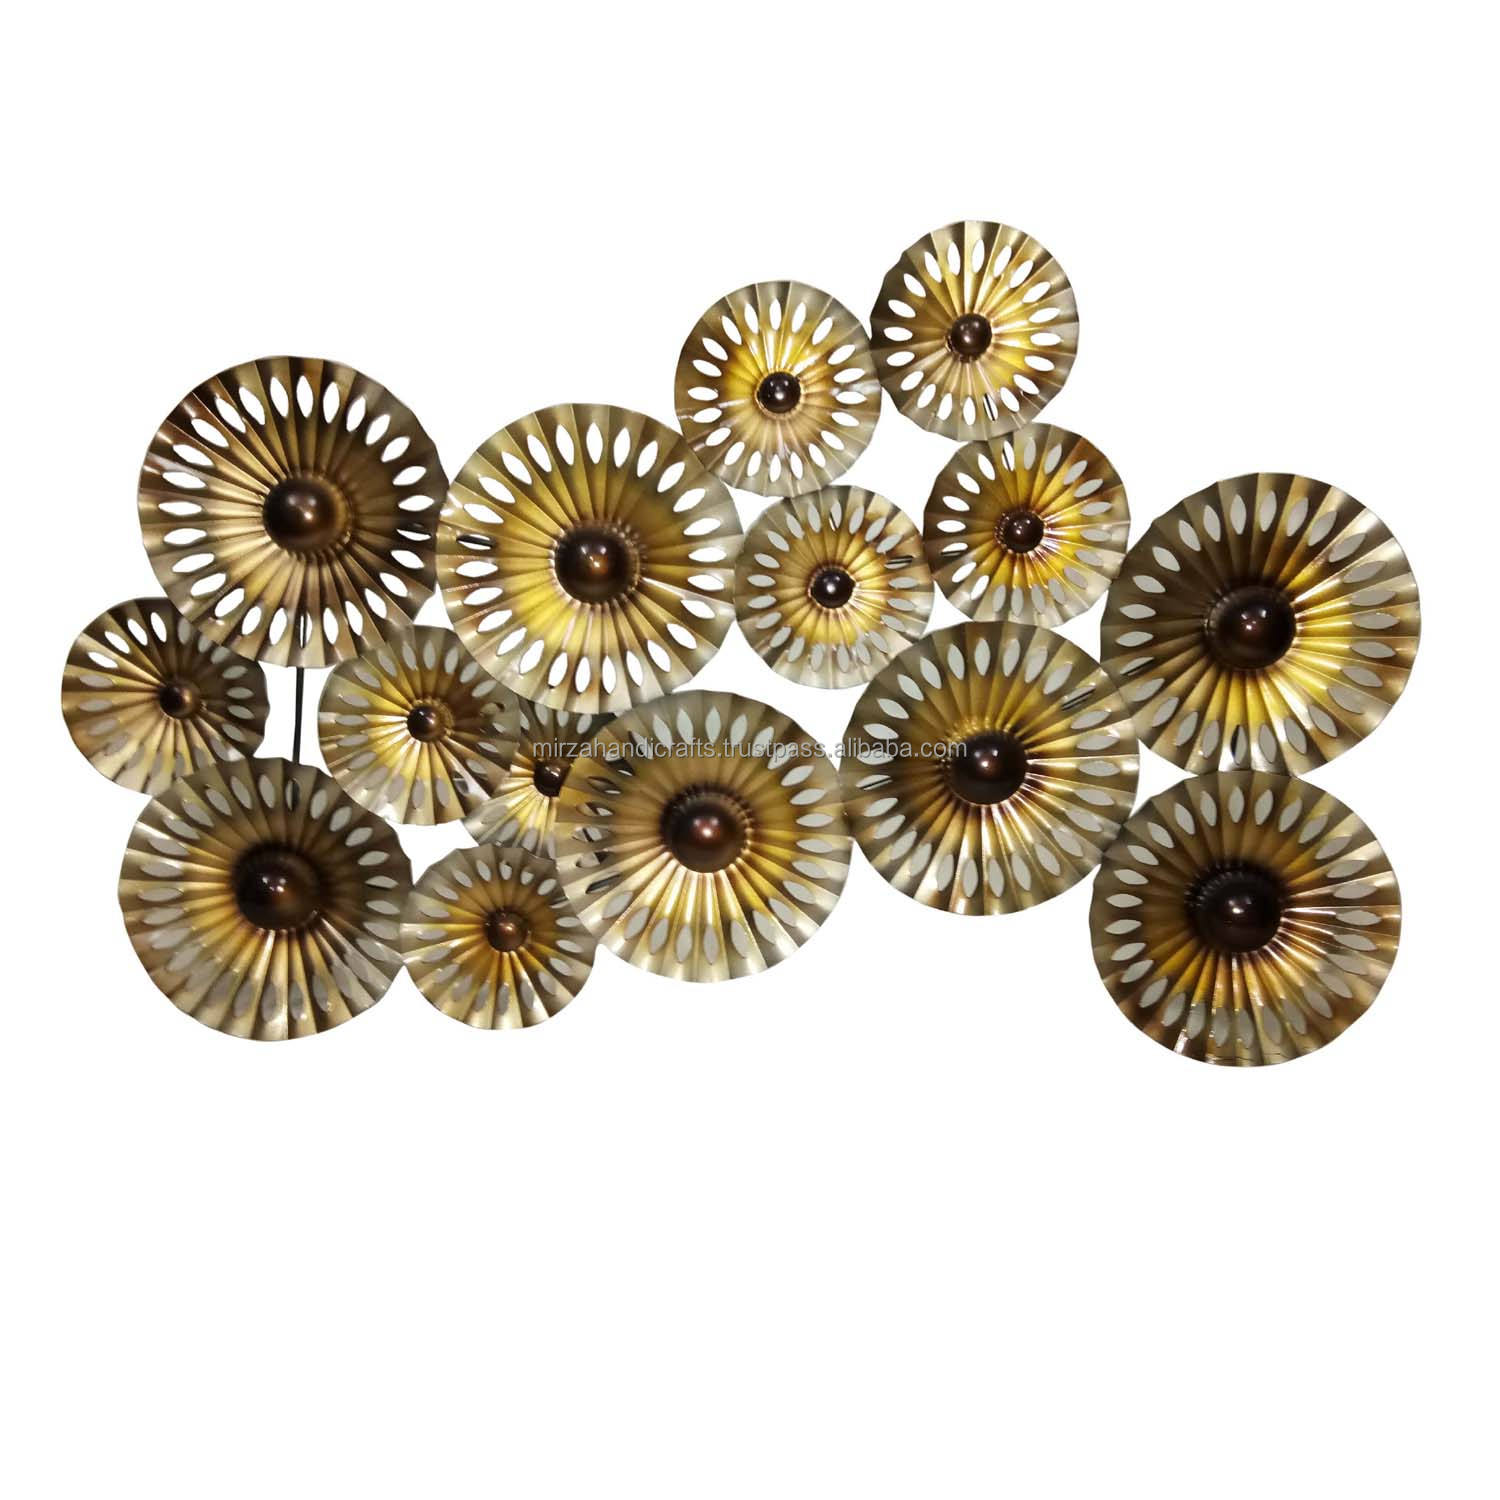 METALLIC CIRCLE S DECORATIVE WALL ART